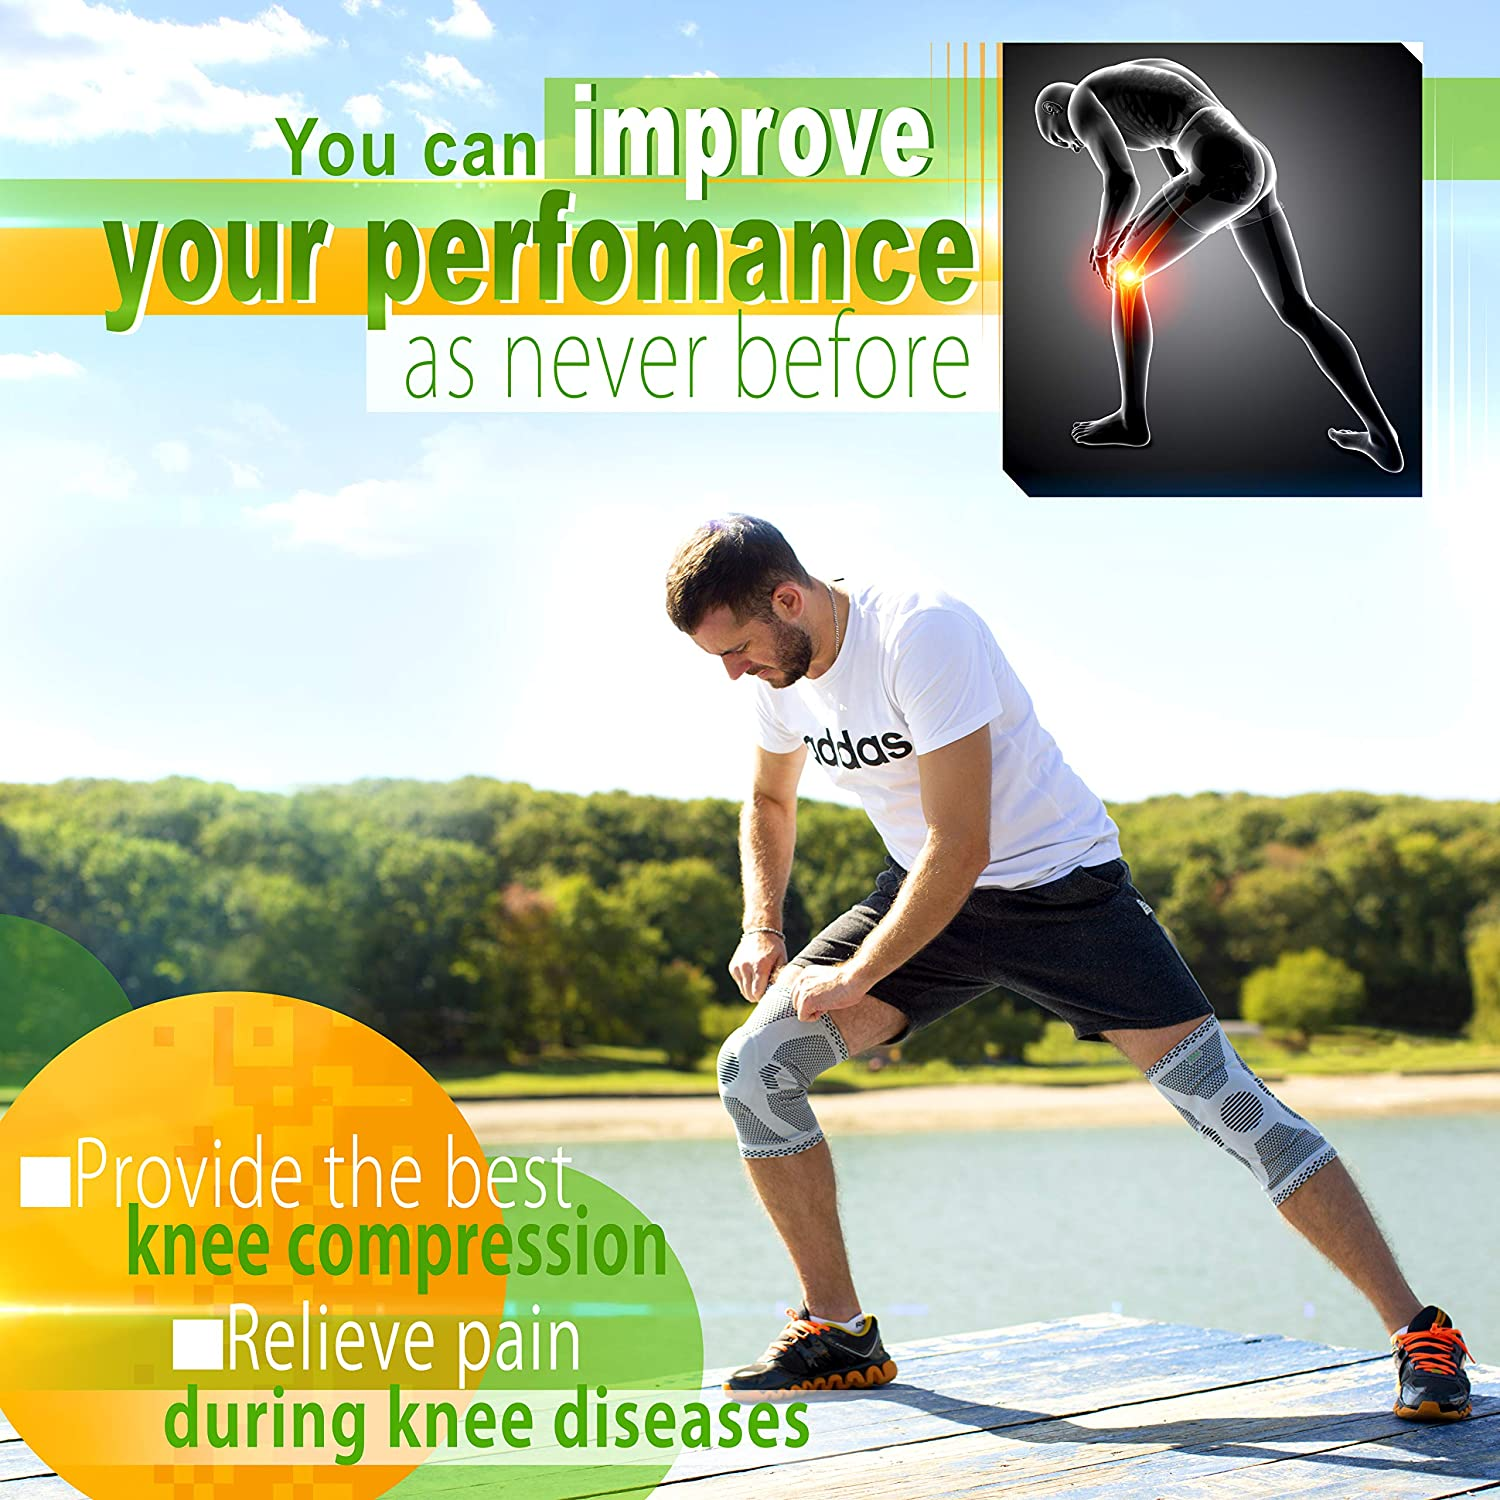 Compression Knee Sleeve for Running Volleyball Sleeve Crossfit Powerlifting Knee Brace for Meniscus Tear Arthritis XL Gray Patella Stabilizer Knee Braces for Men Women Kids Boys ANRI.E